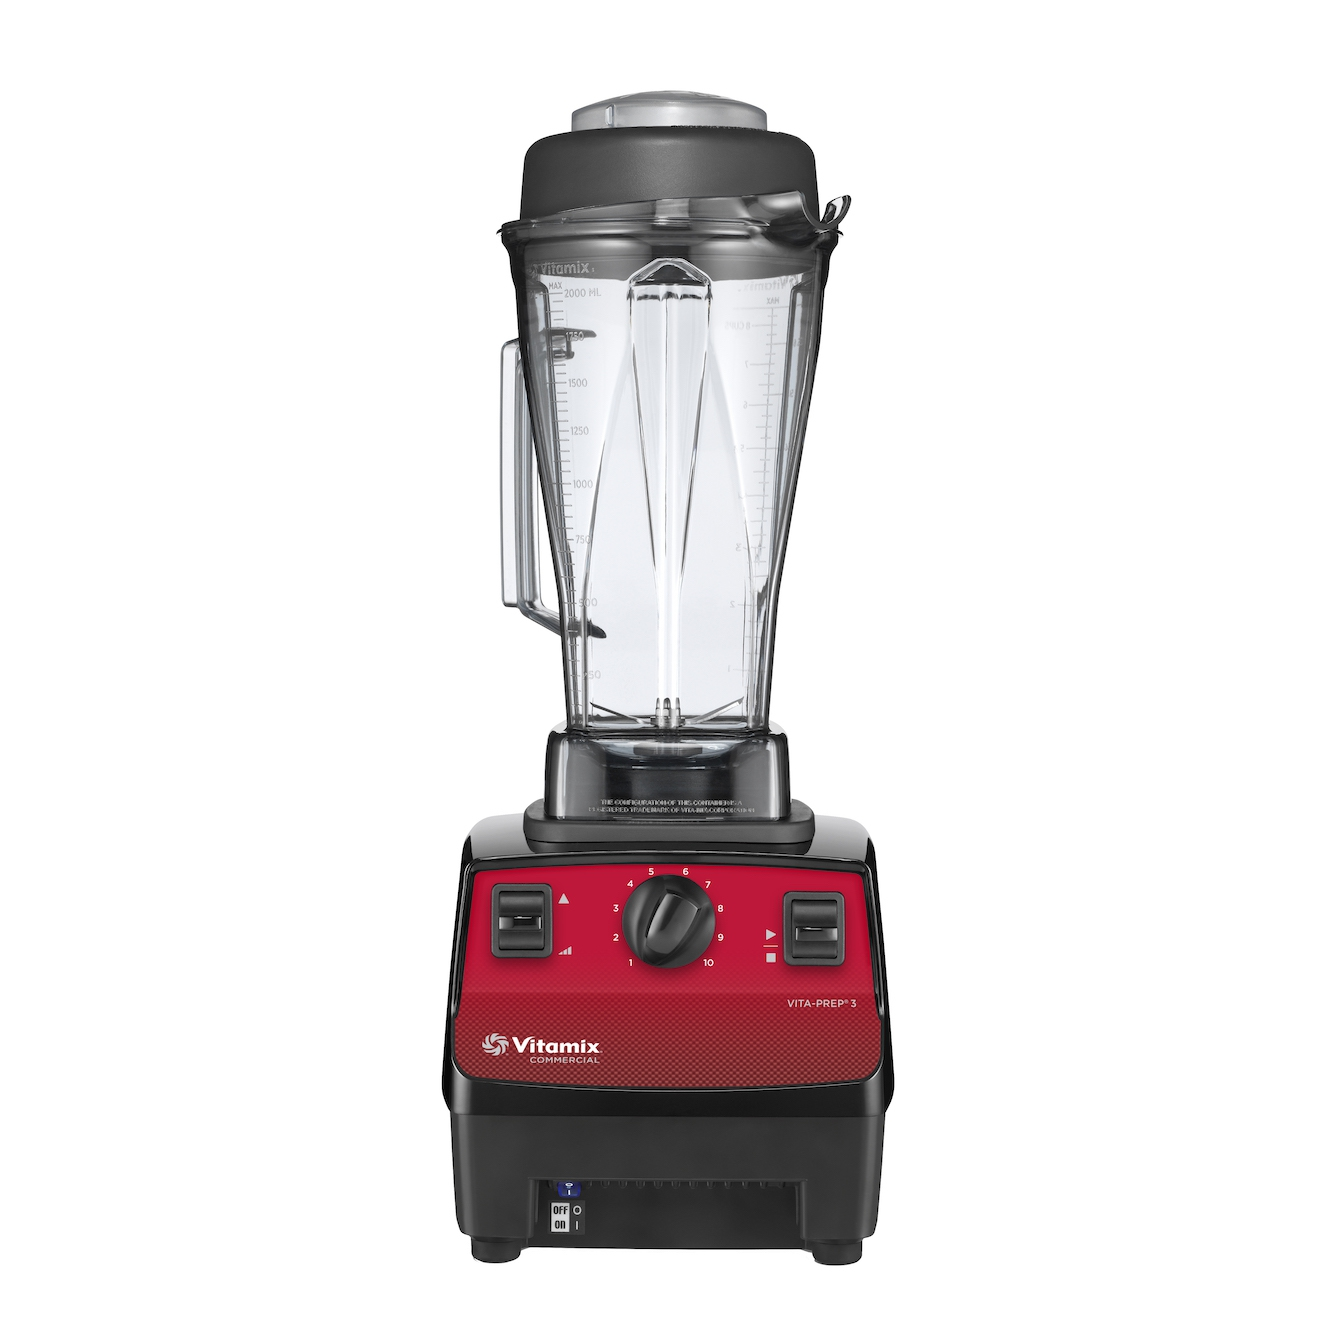 62826 – Vitamix VitaPrep 3 Blender